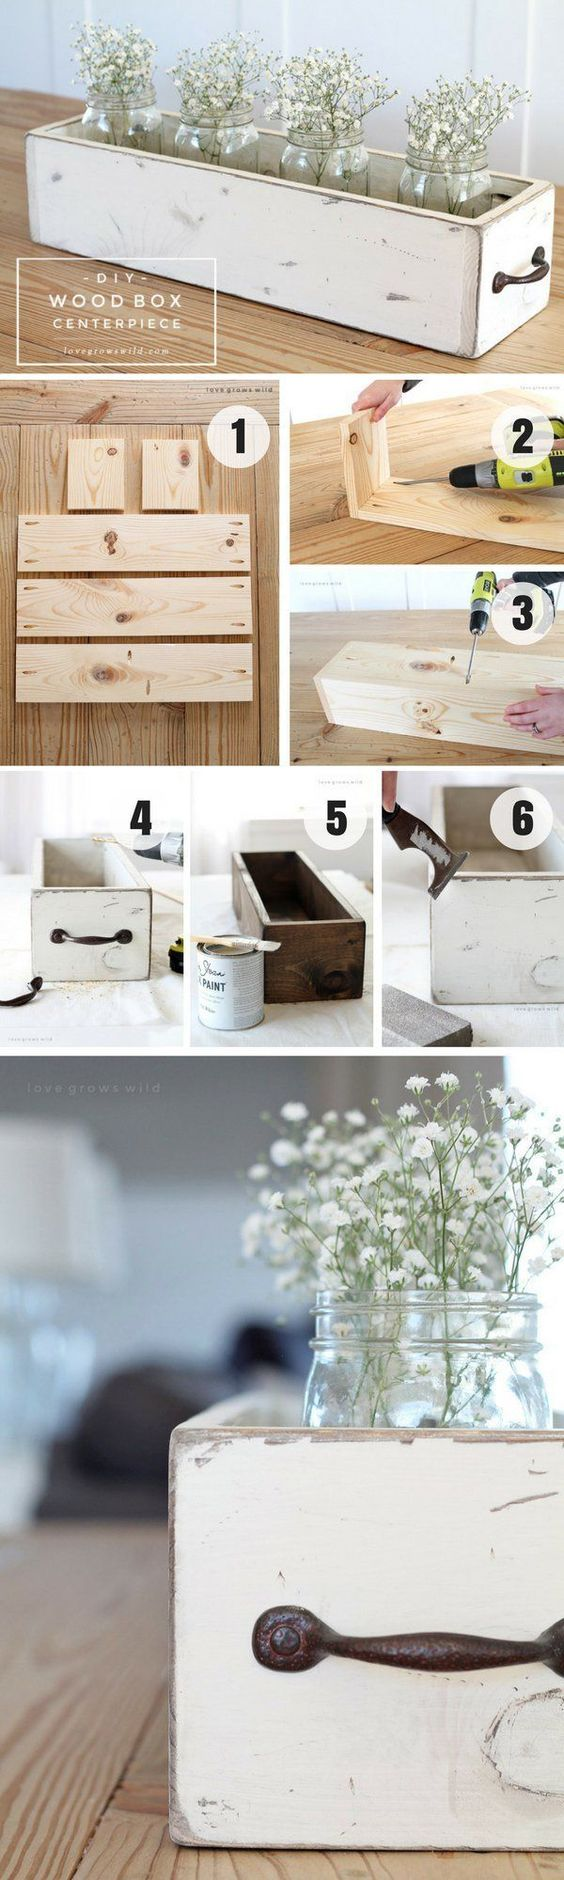 Check out how to build an easy DIY Wood Box Centerpiece @Industry Standard Design